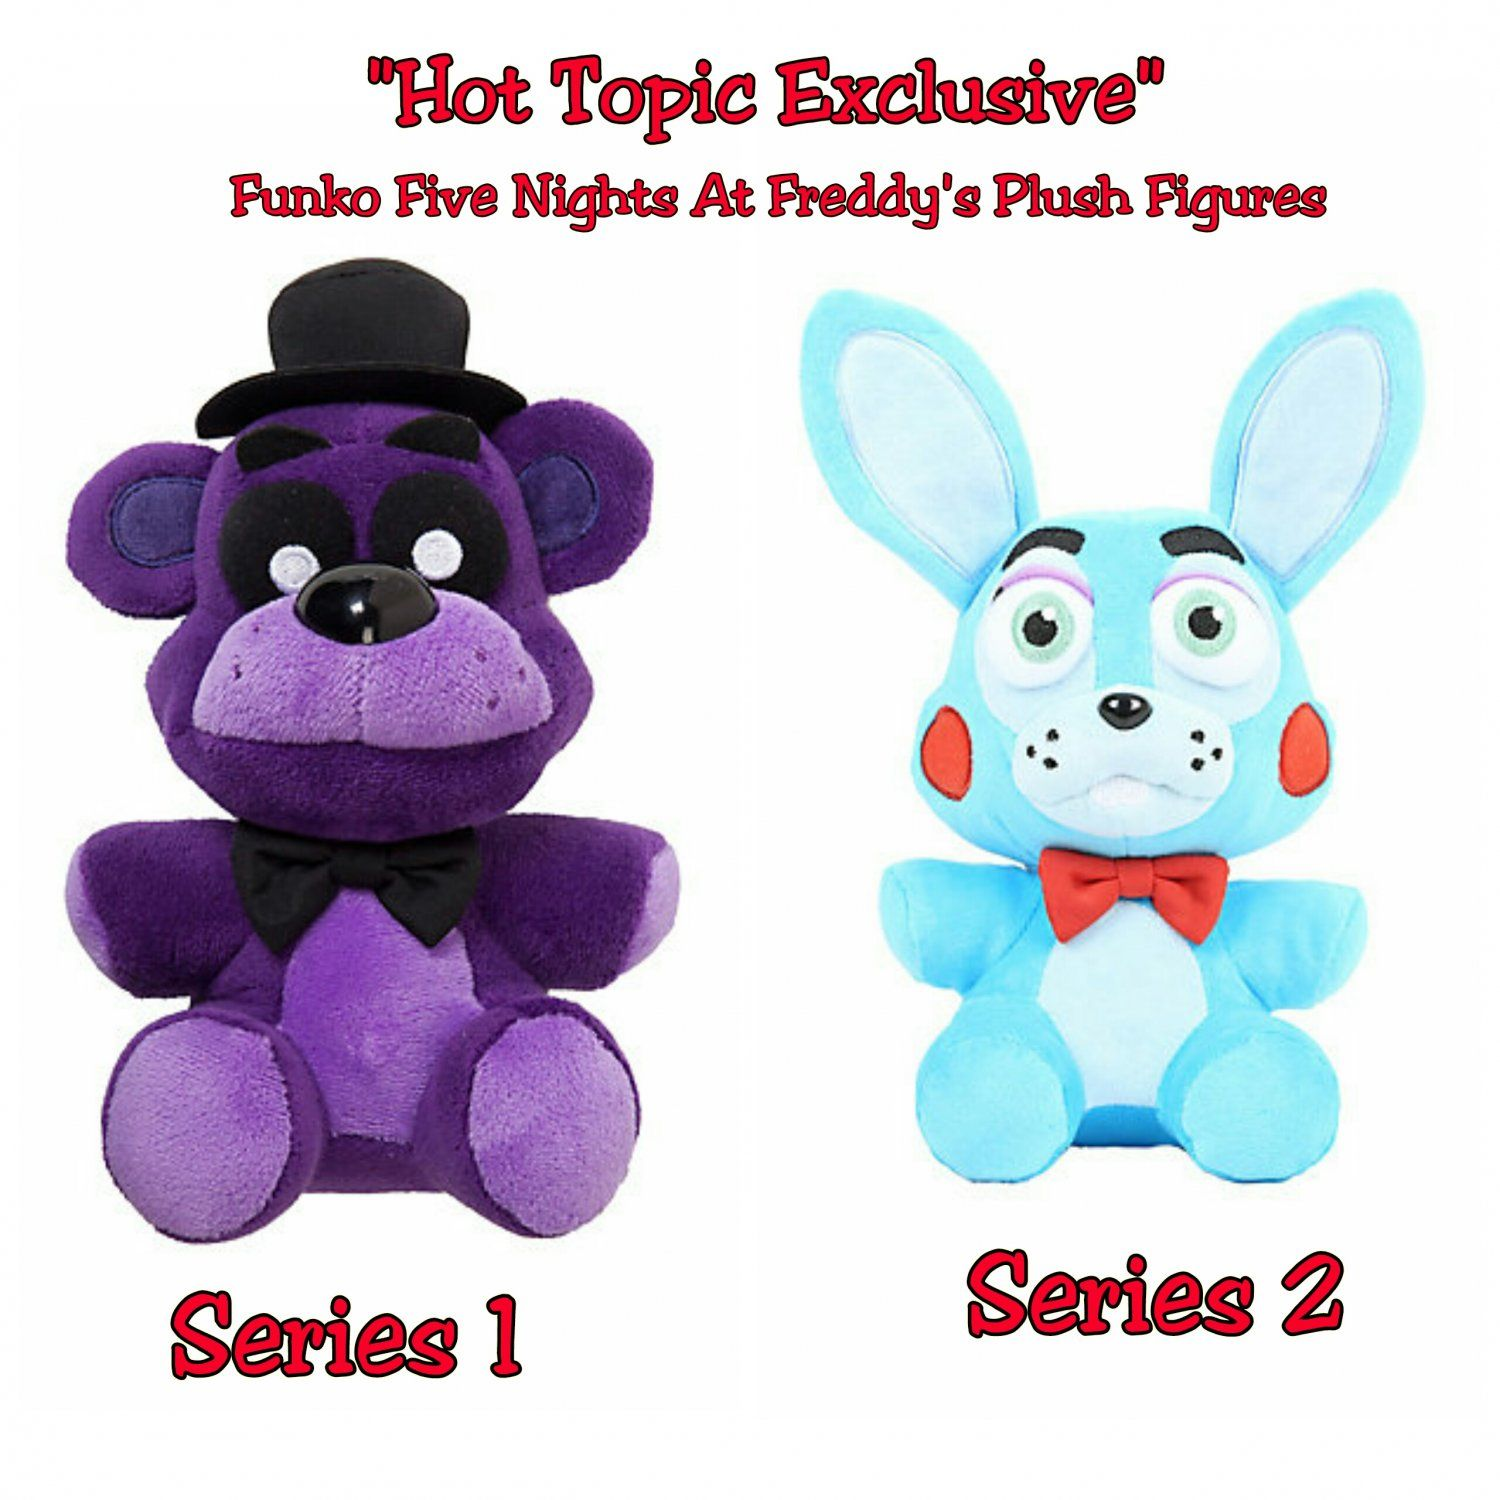 Toys From Hot Topic : Five nights at freddy s shadow toy bonnie